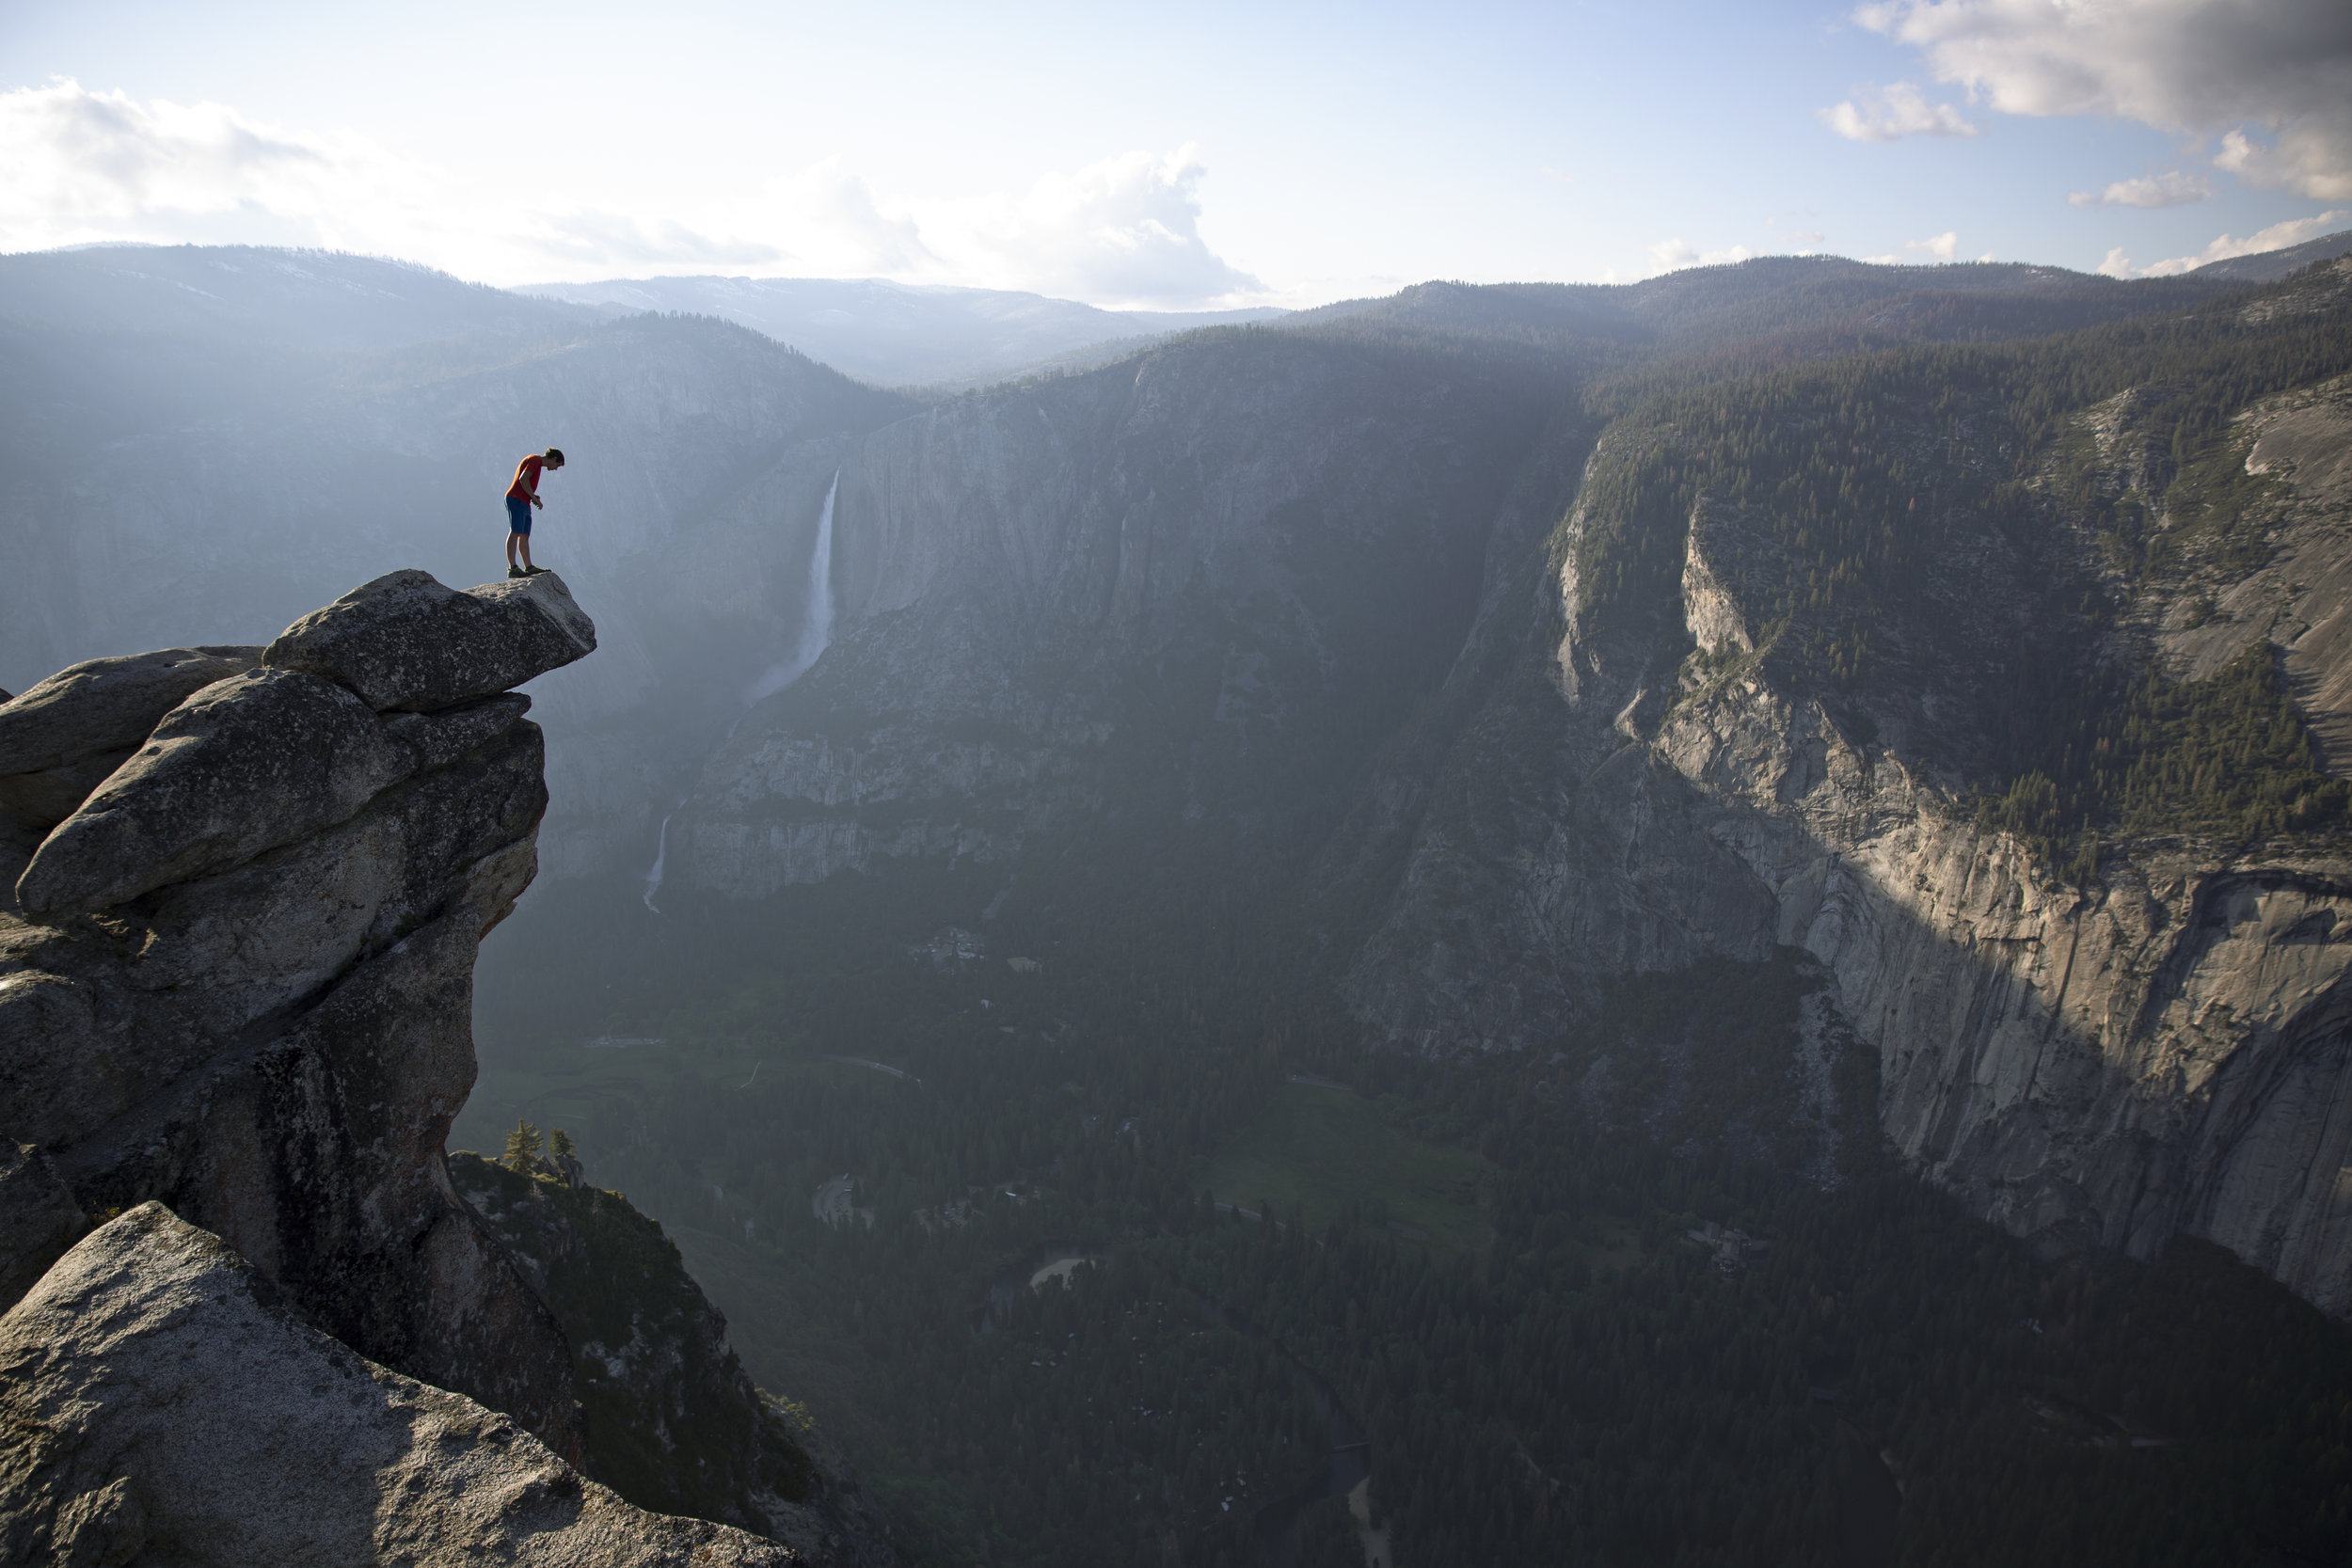 Free Solo. CREDIT: National Geographic